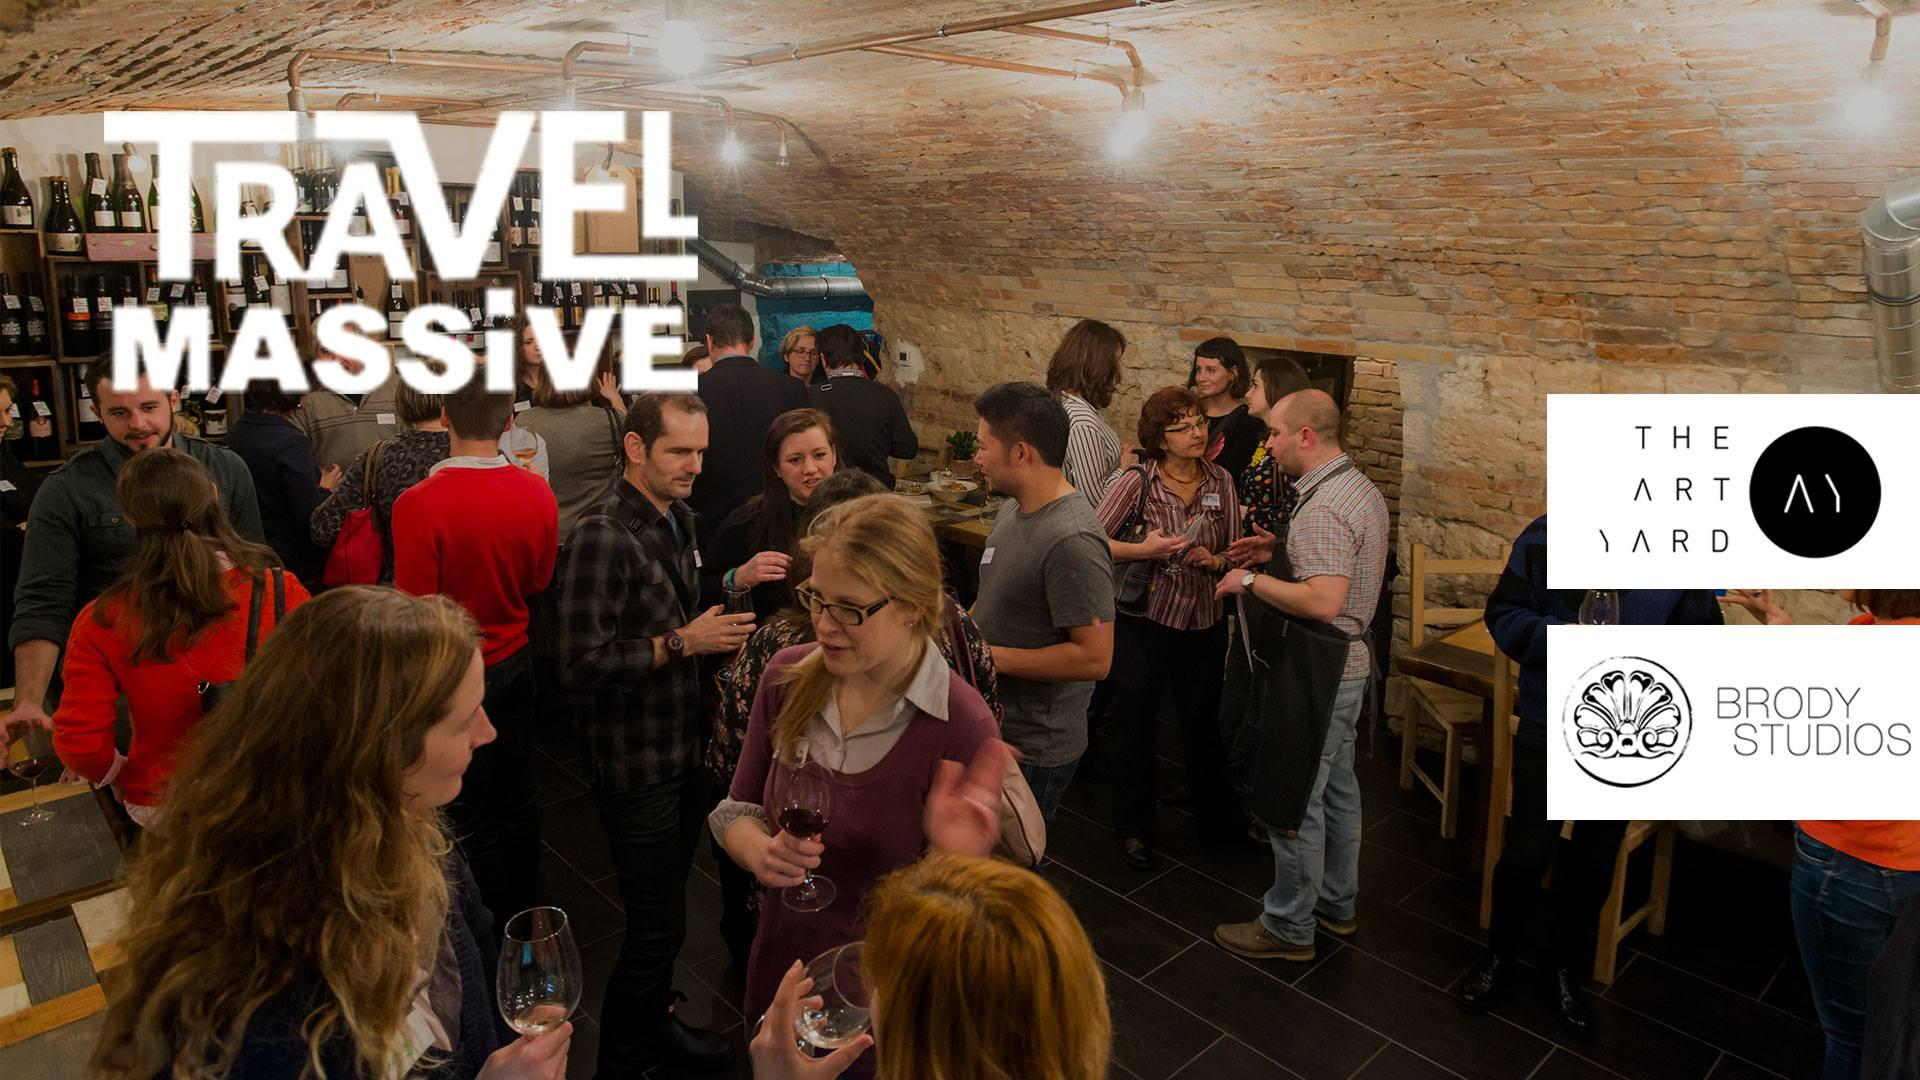 Travel Massive & Brody Studios Event: Travel & Networking, 6 May